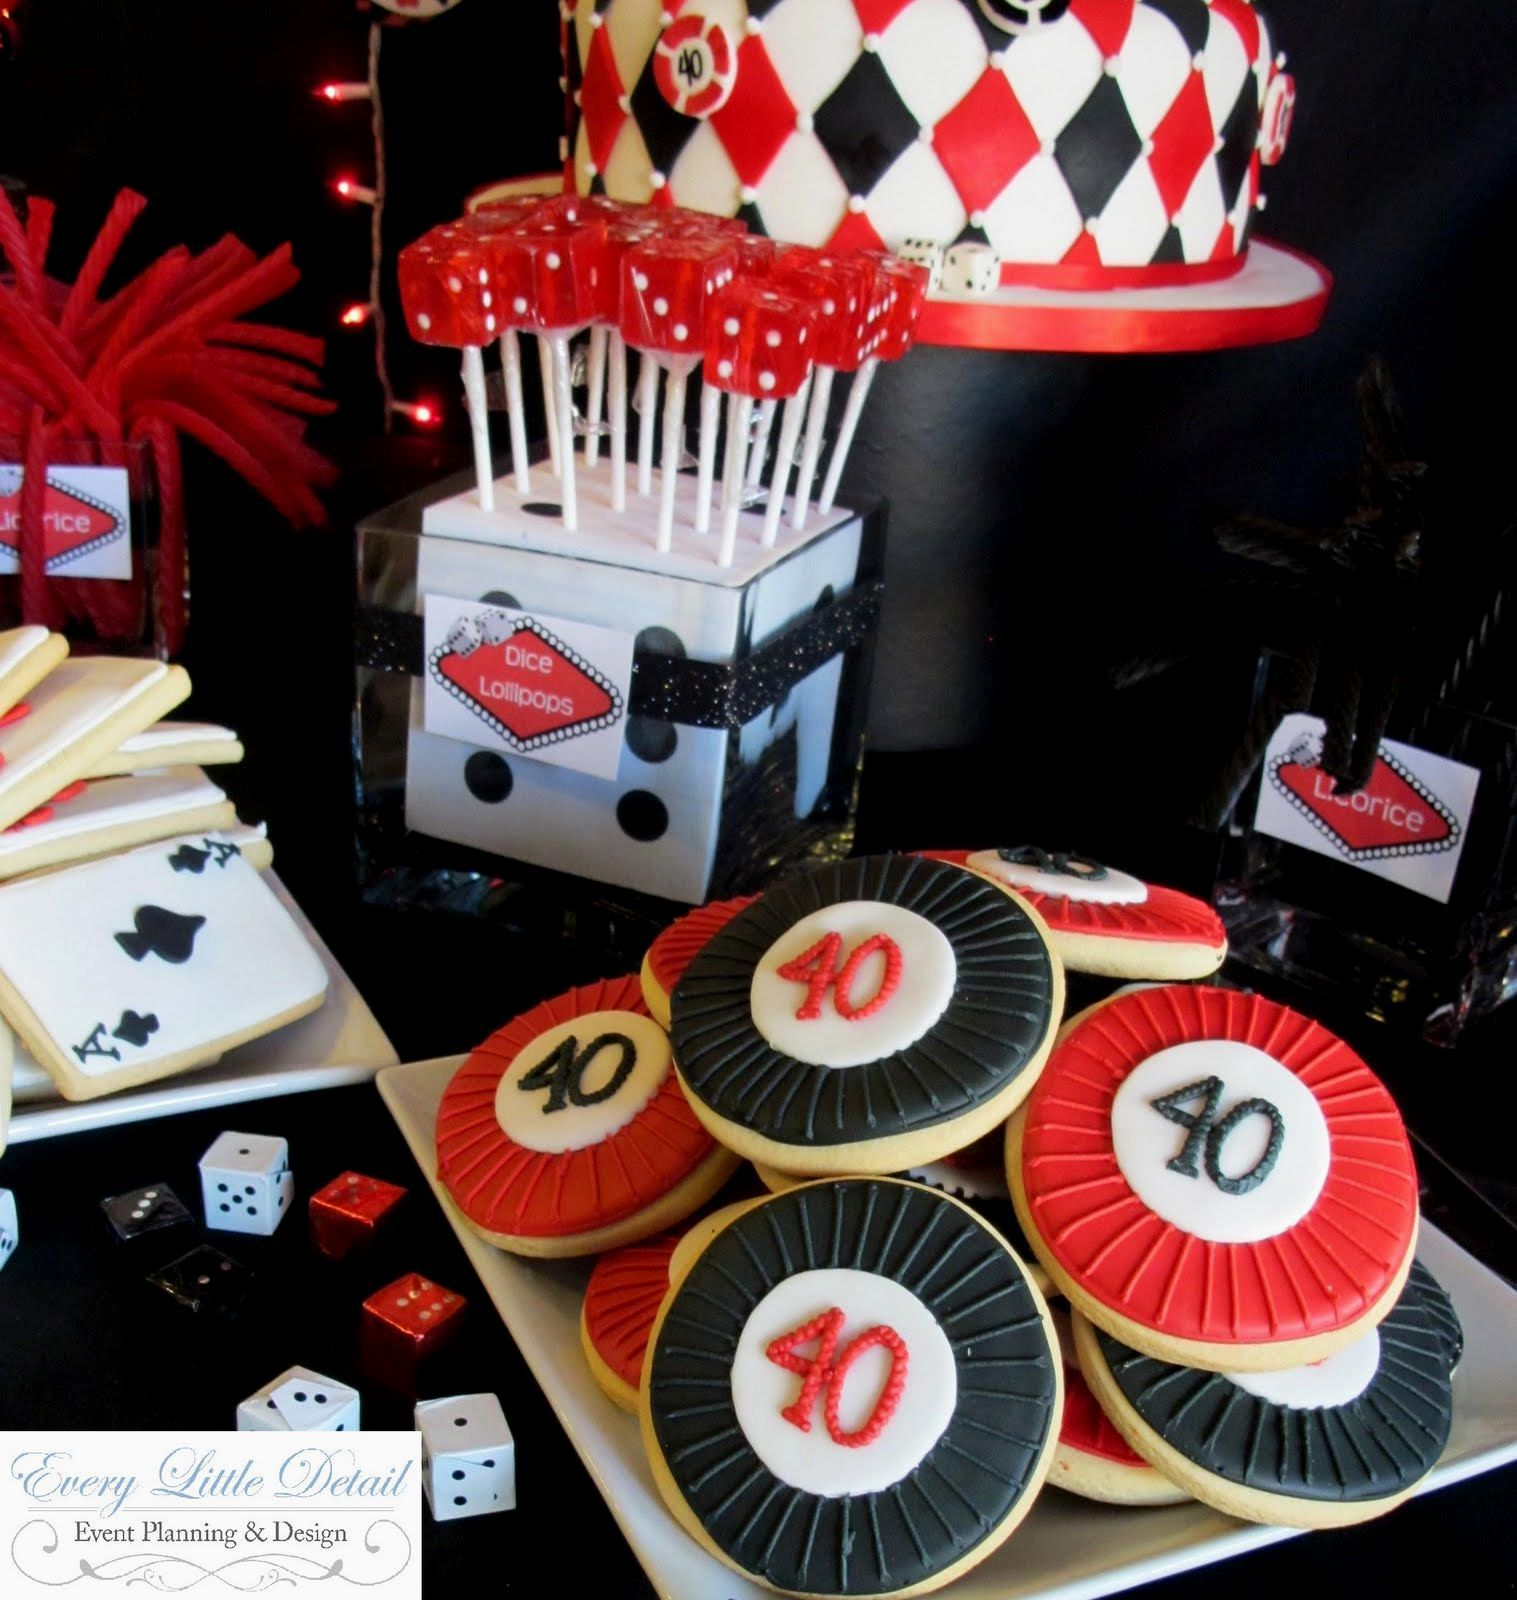 Casino Party Theme Ideas Chip And Card Cookies